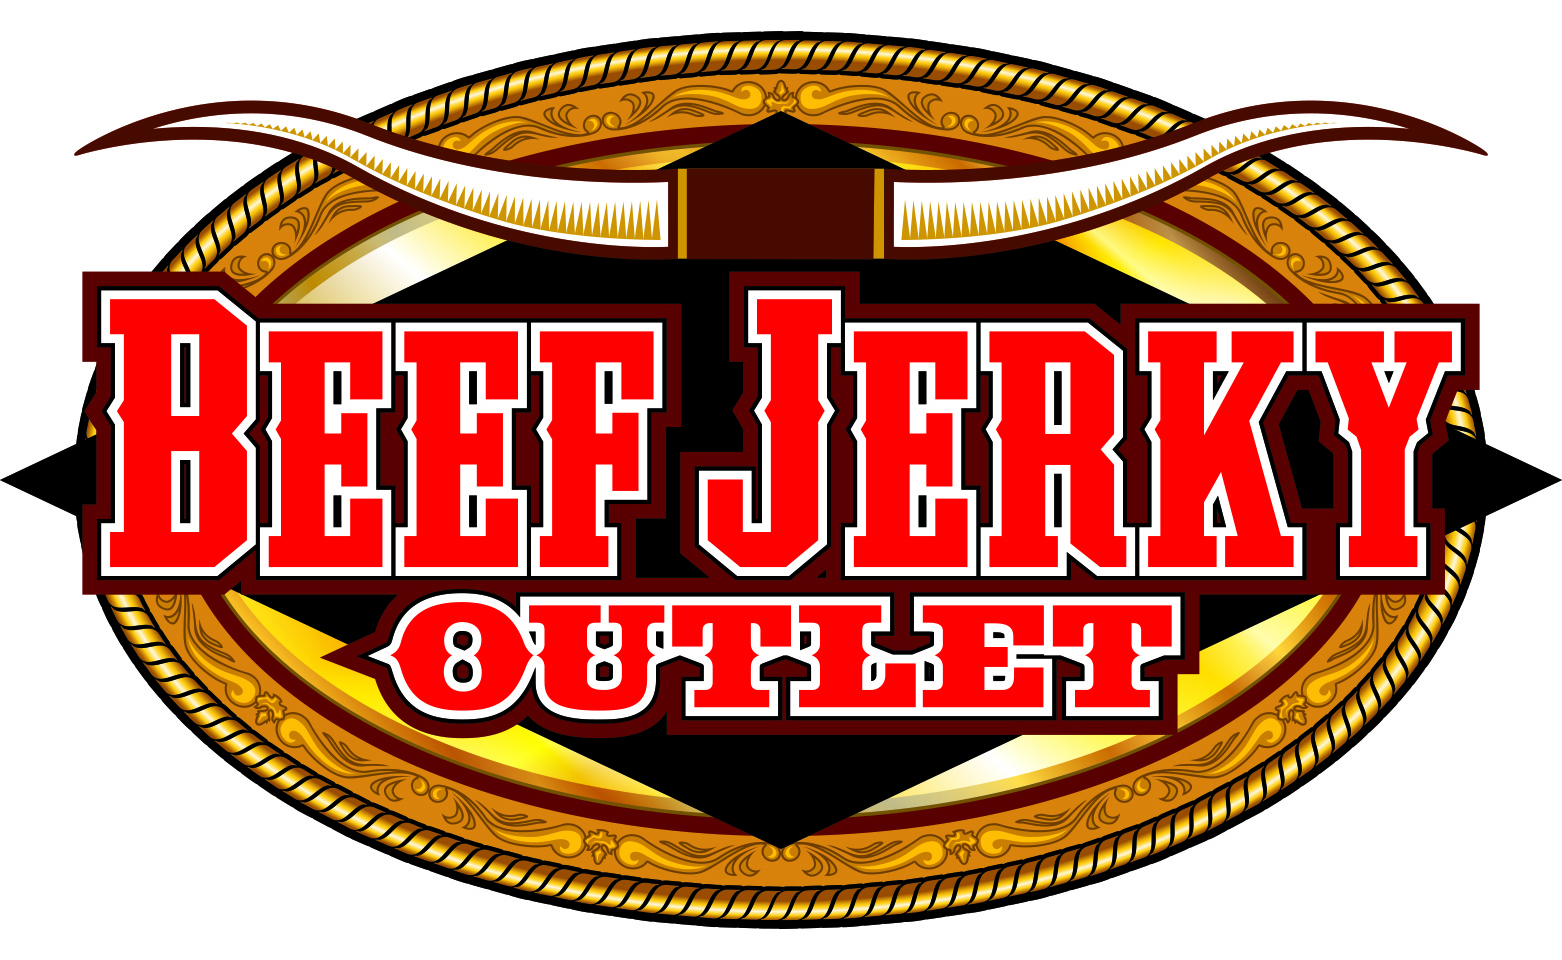 Special Deal on the Jerky that's not quite Damn Good!!! But still Good!!!